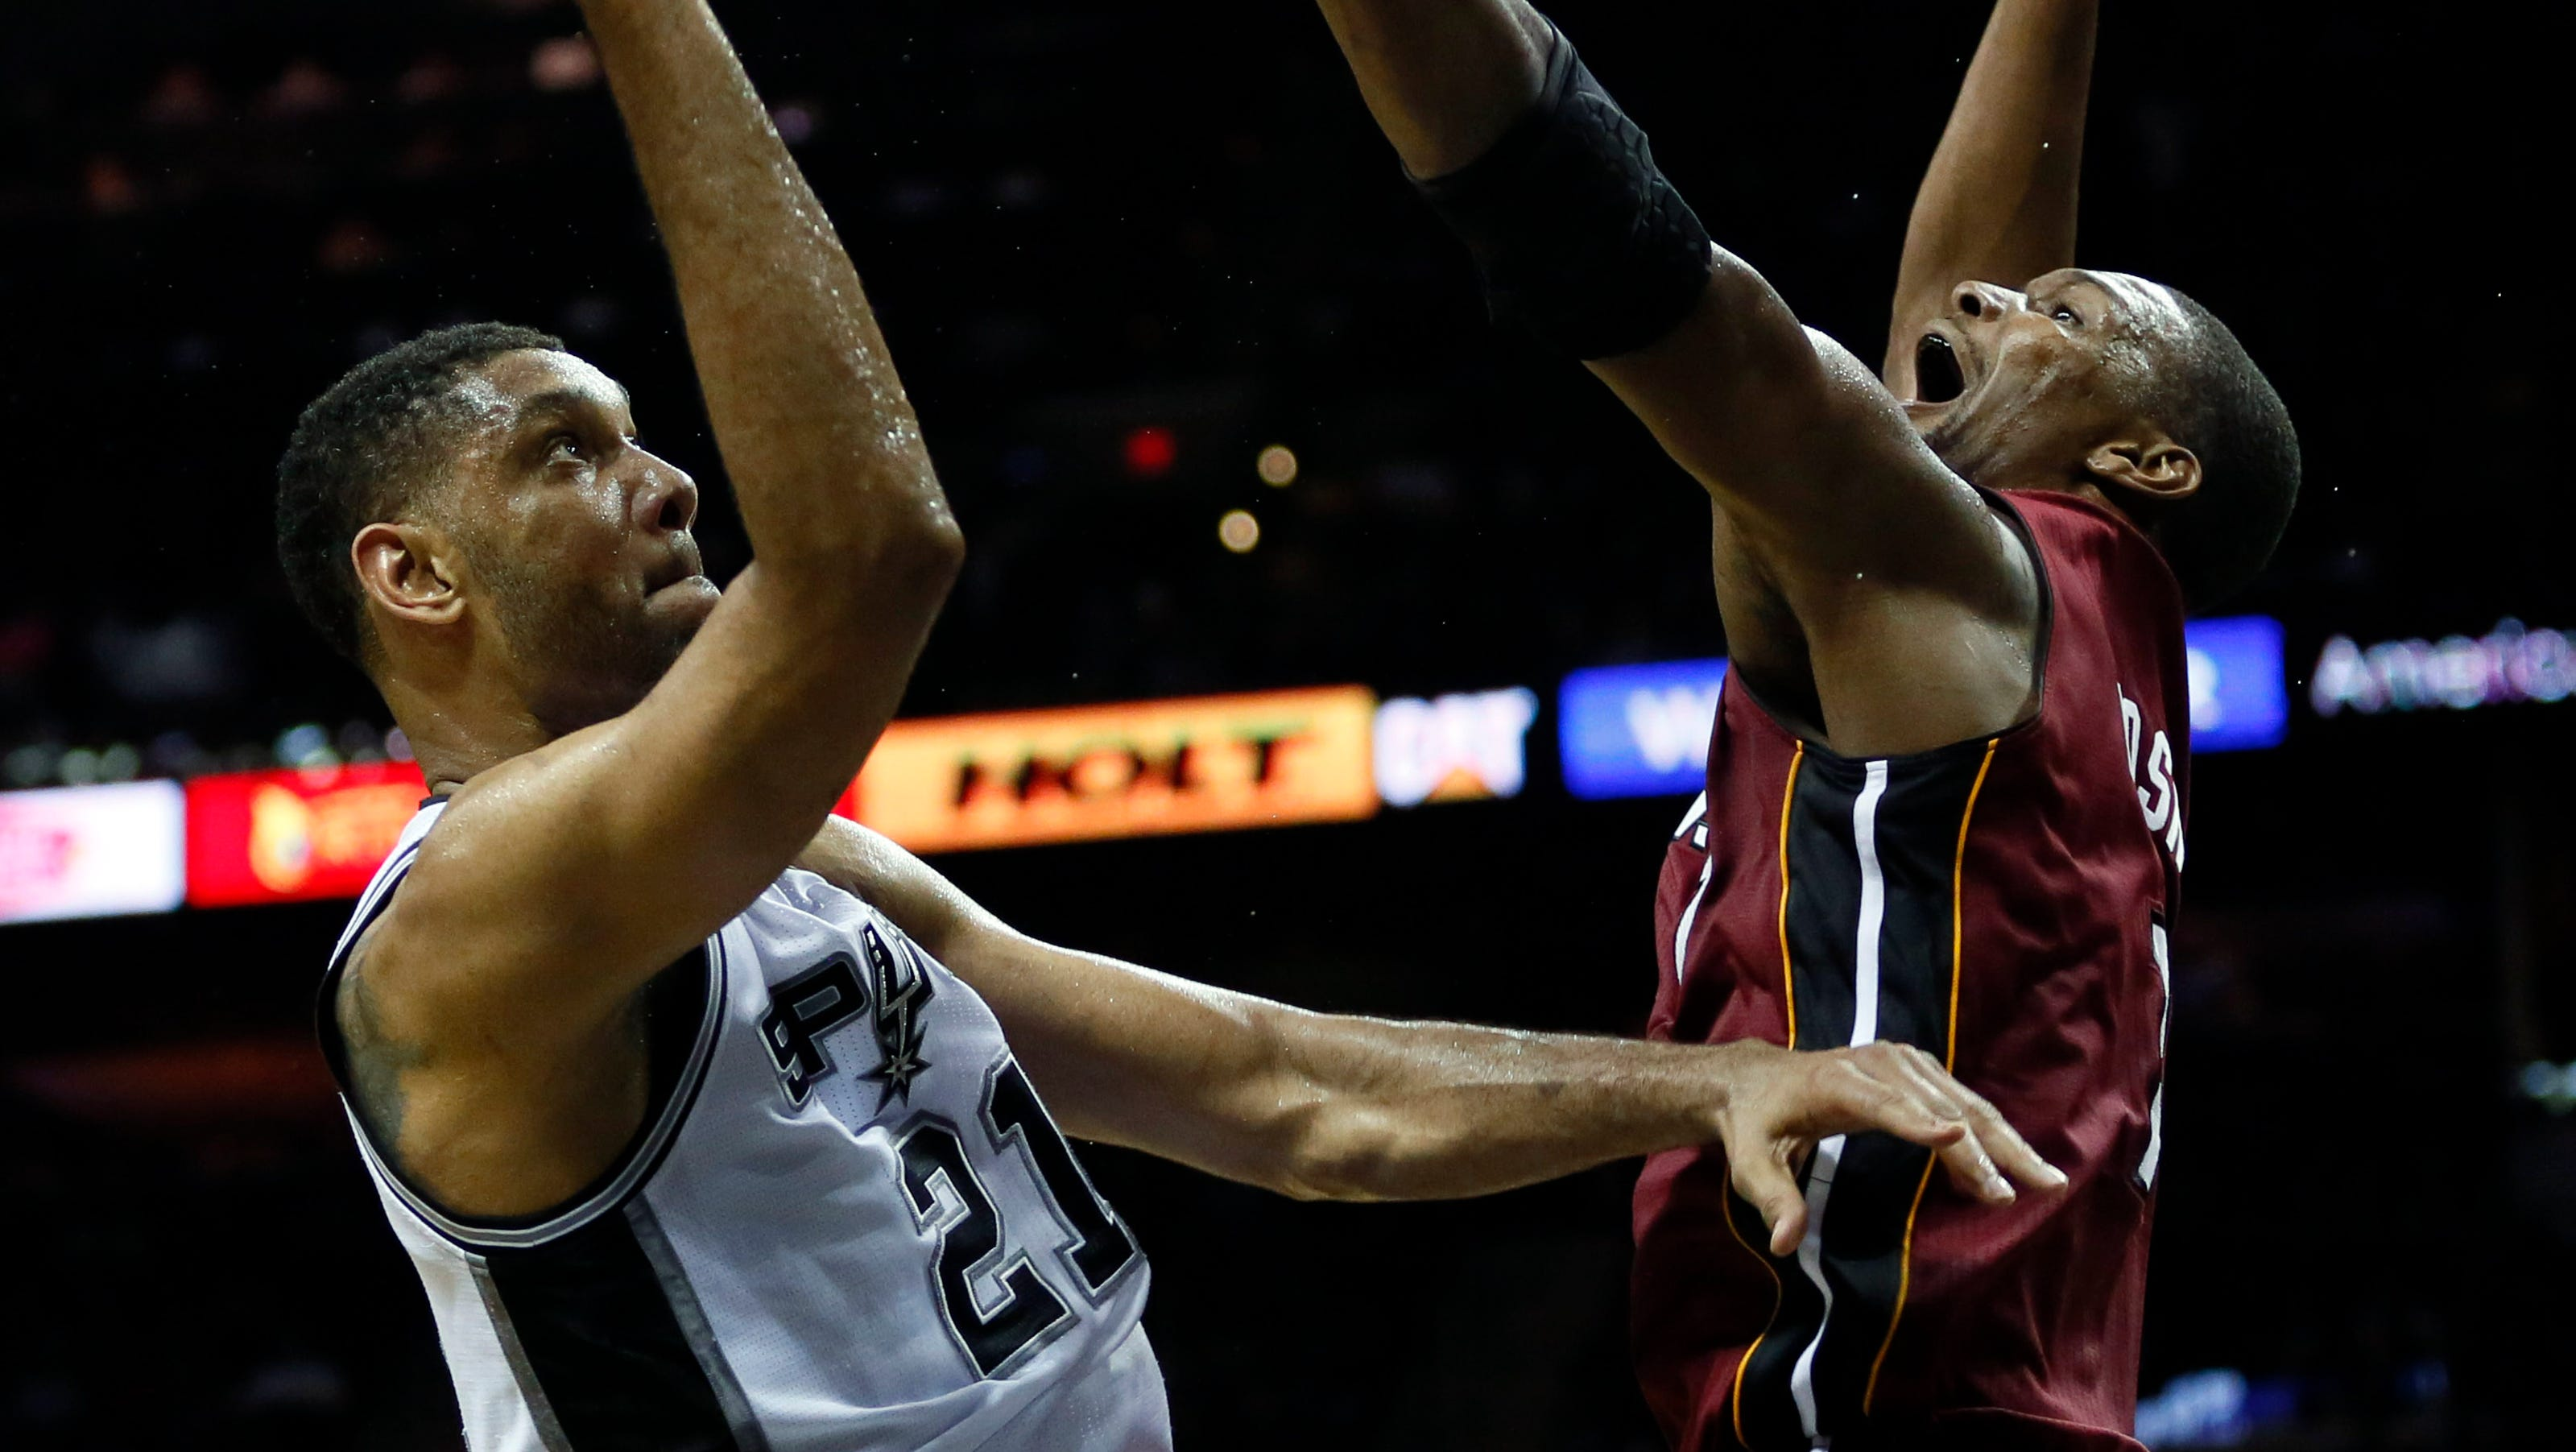 Spurs top Heat as LeBron James cramps in sweltering AT&T Center